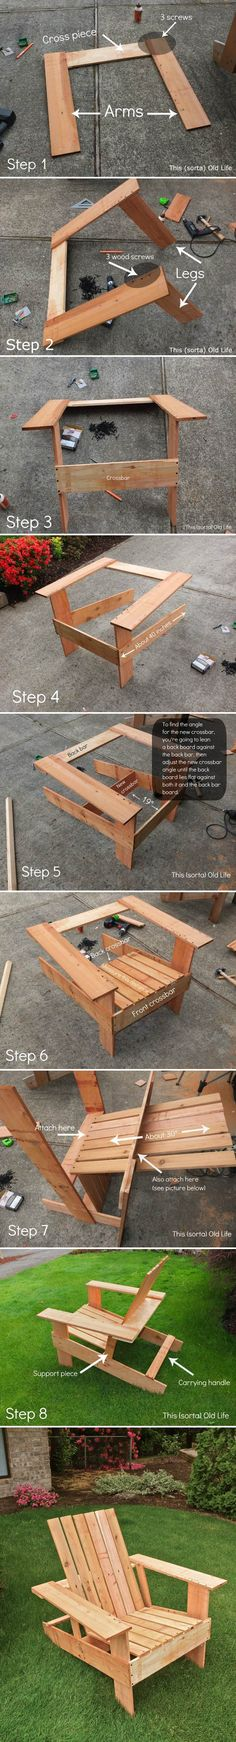 DIY Adirondack Chair Tutorial.  I am going to build this first week in July